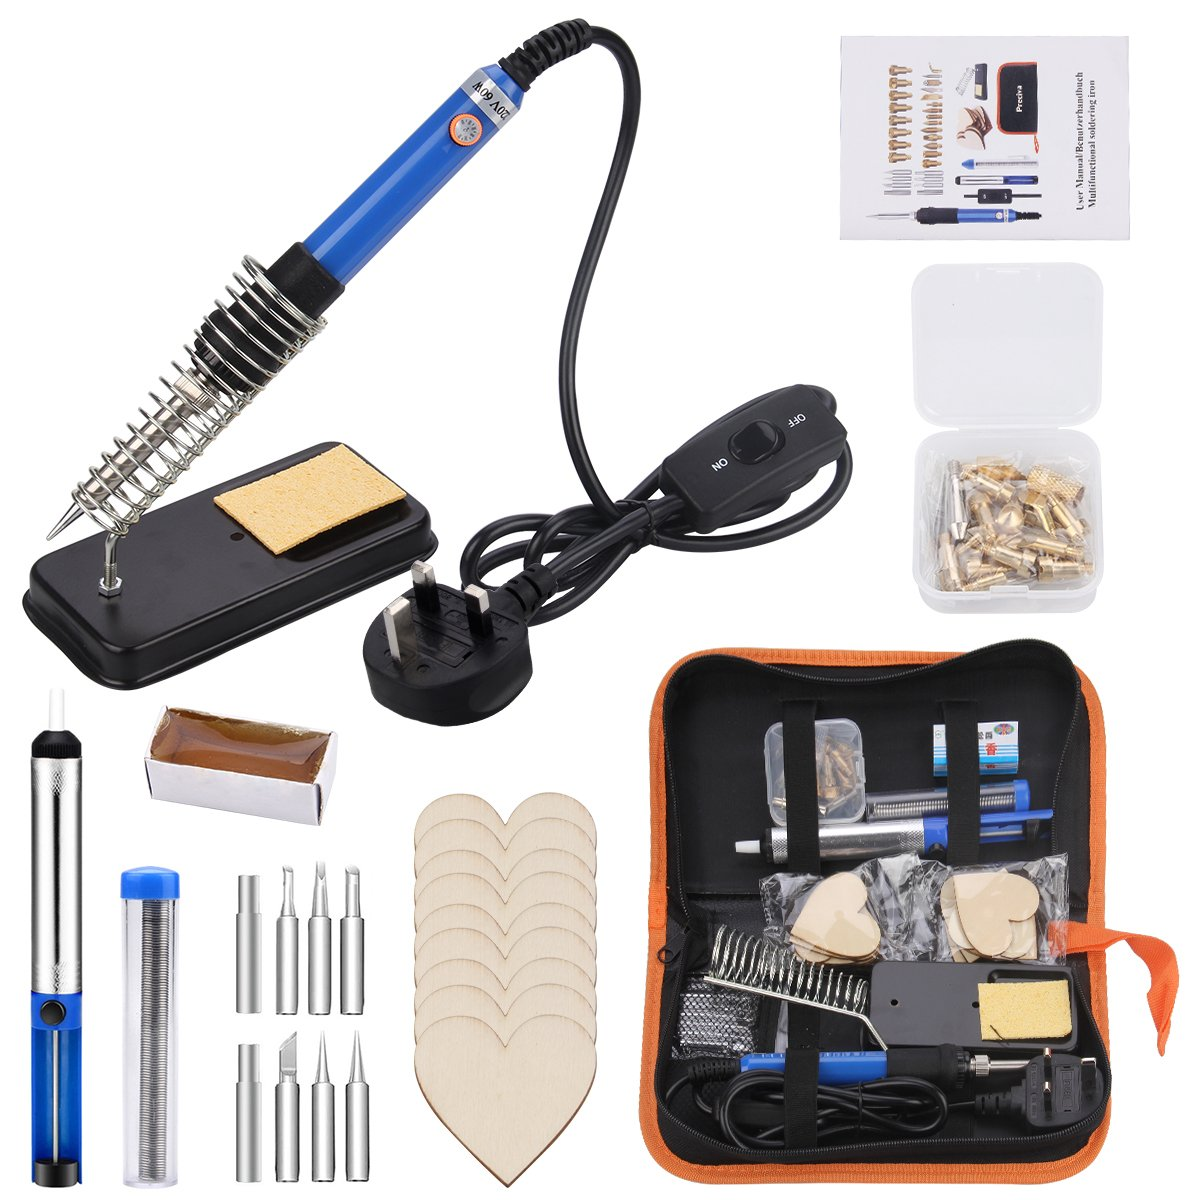 Wood Iron Kit Multifunctional Pyrography Kit with Tips for Cutting and Carving Preciva 37 Pieces Soldering Iron Kit